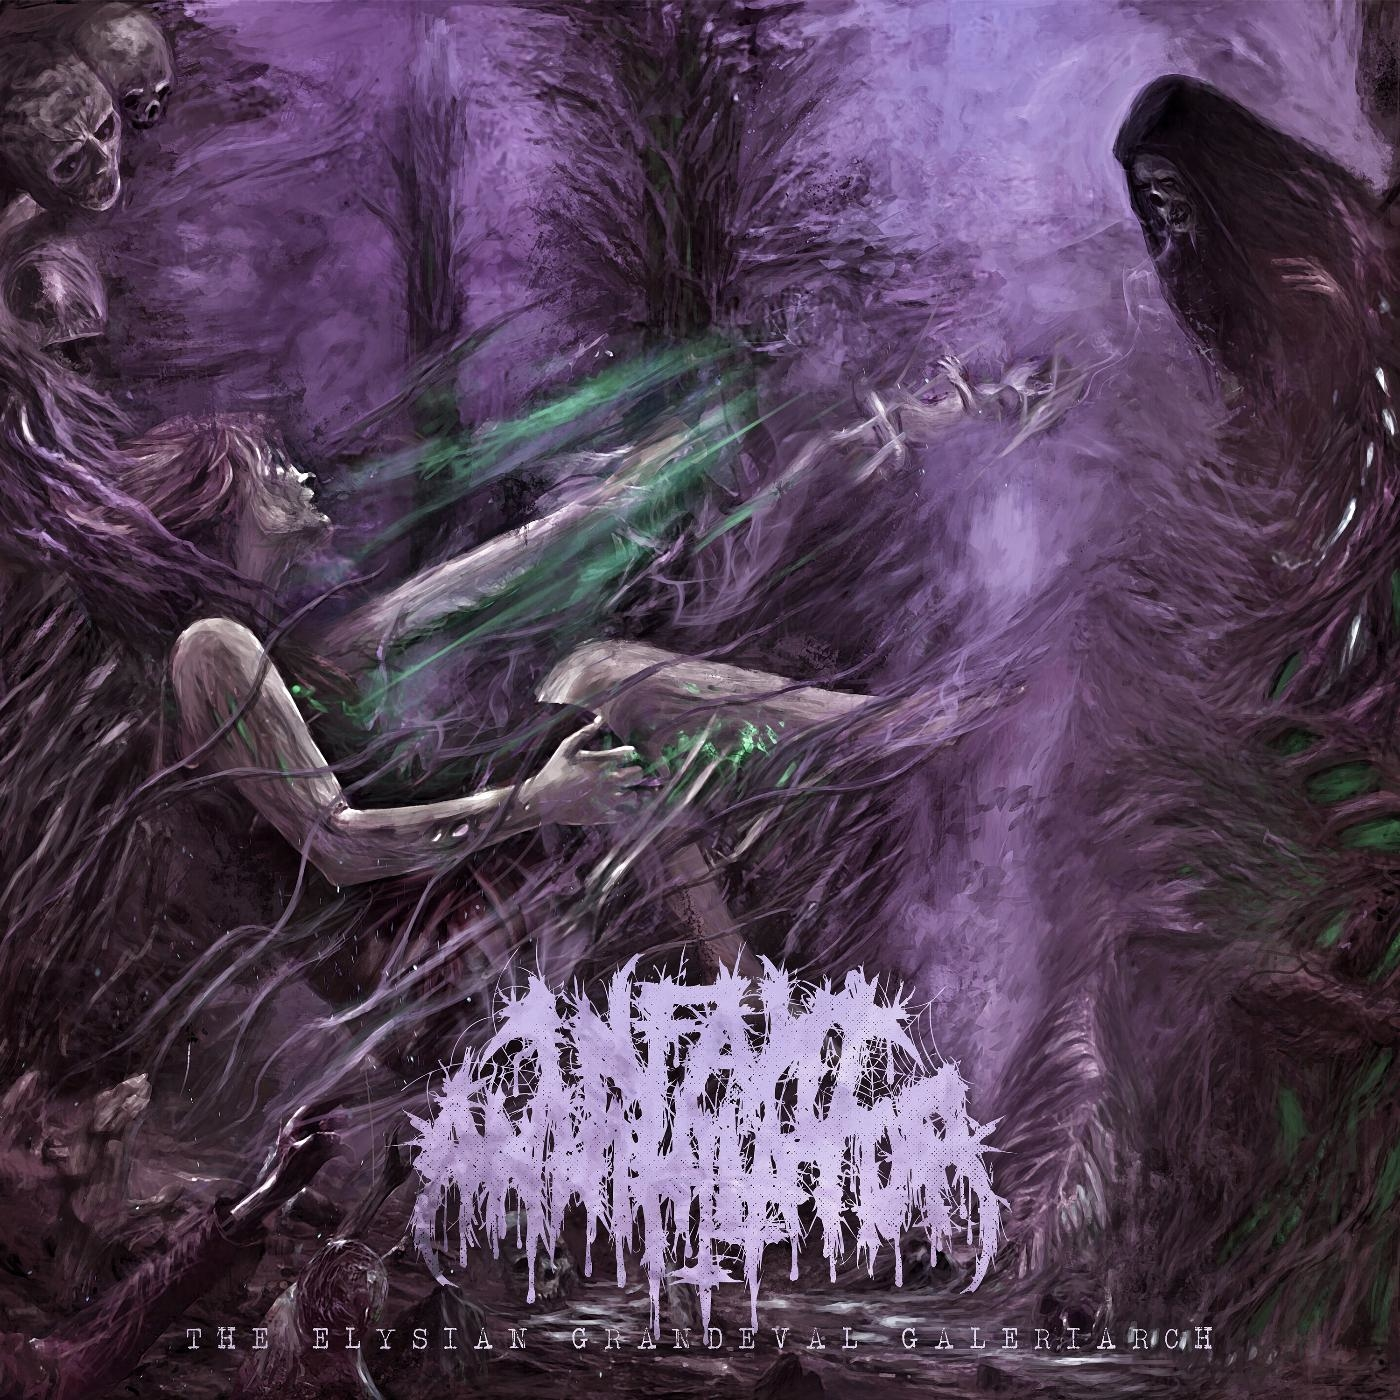 Infant Annihilator - Soil The Stillborn [single] (2016)